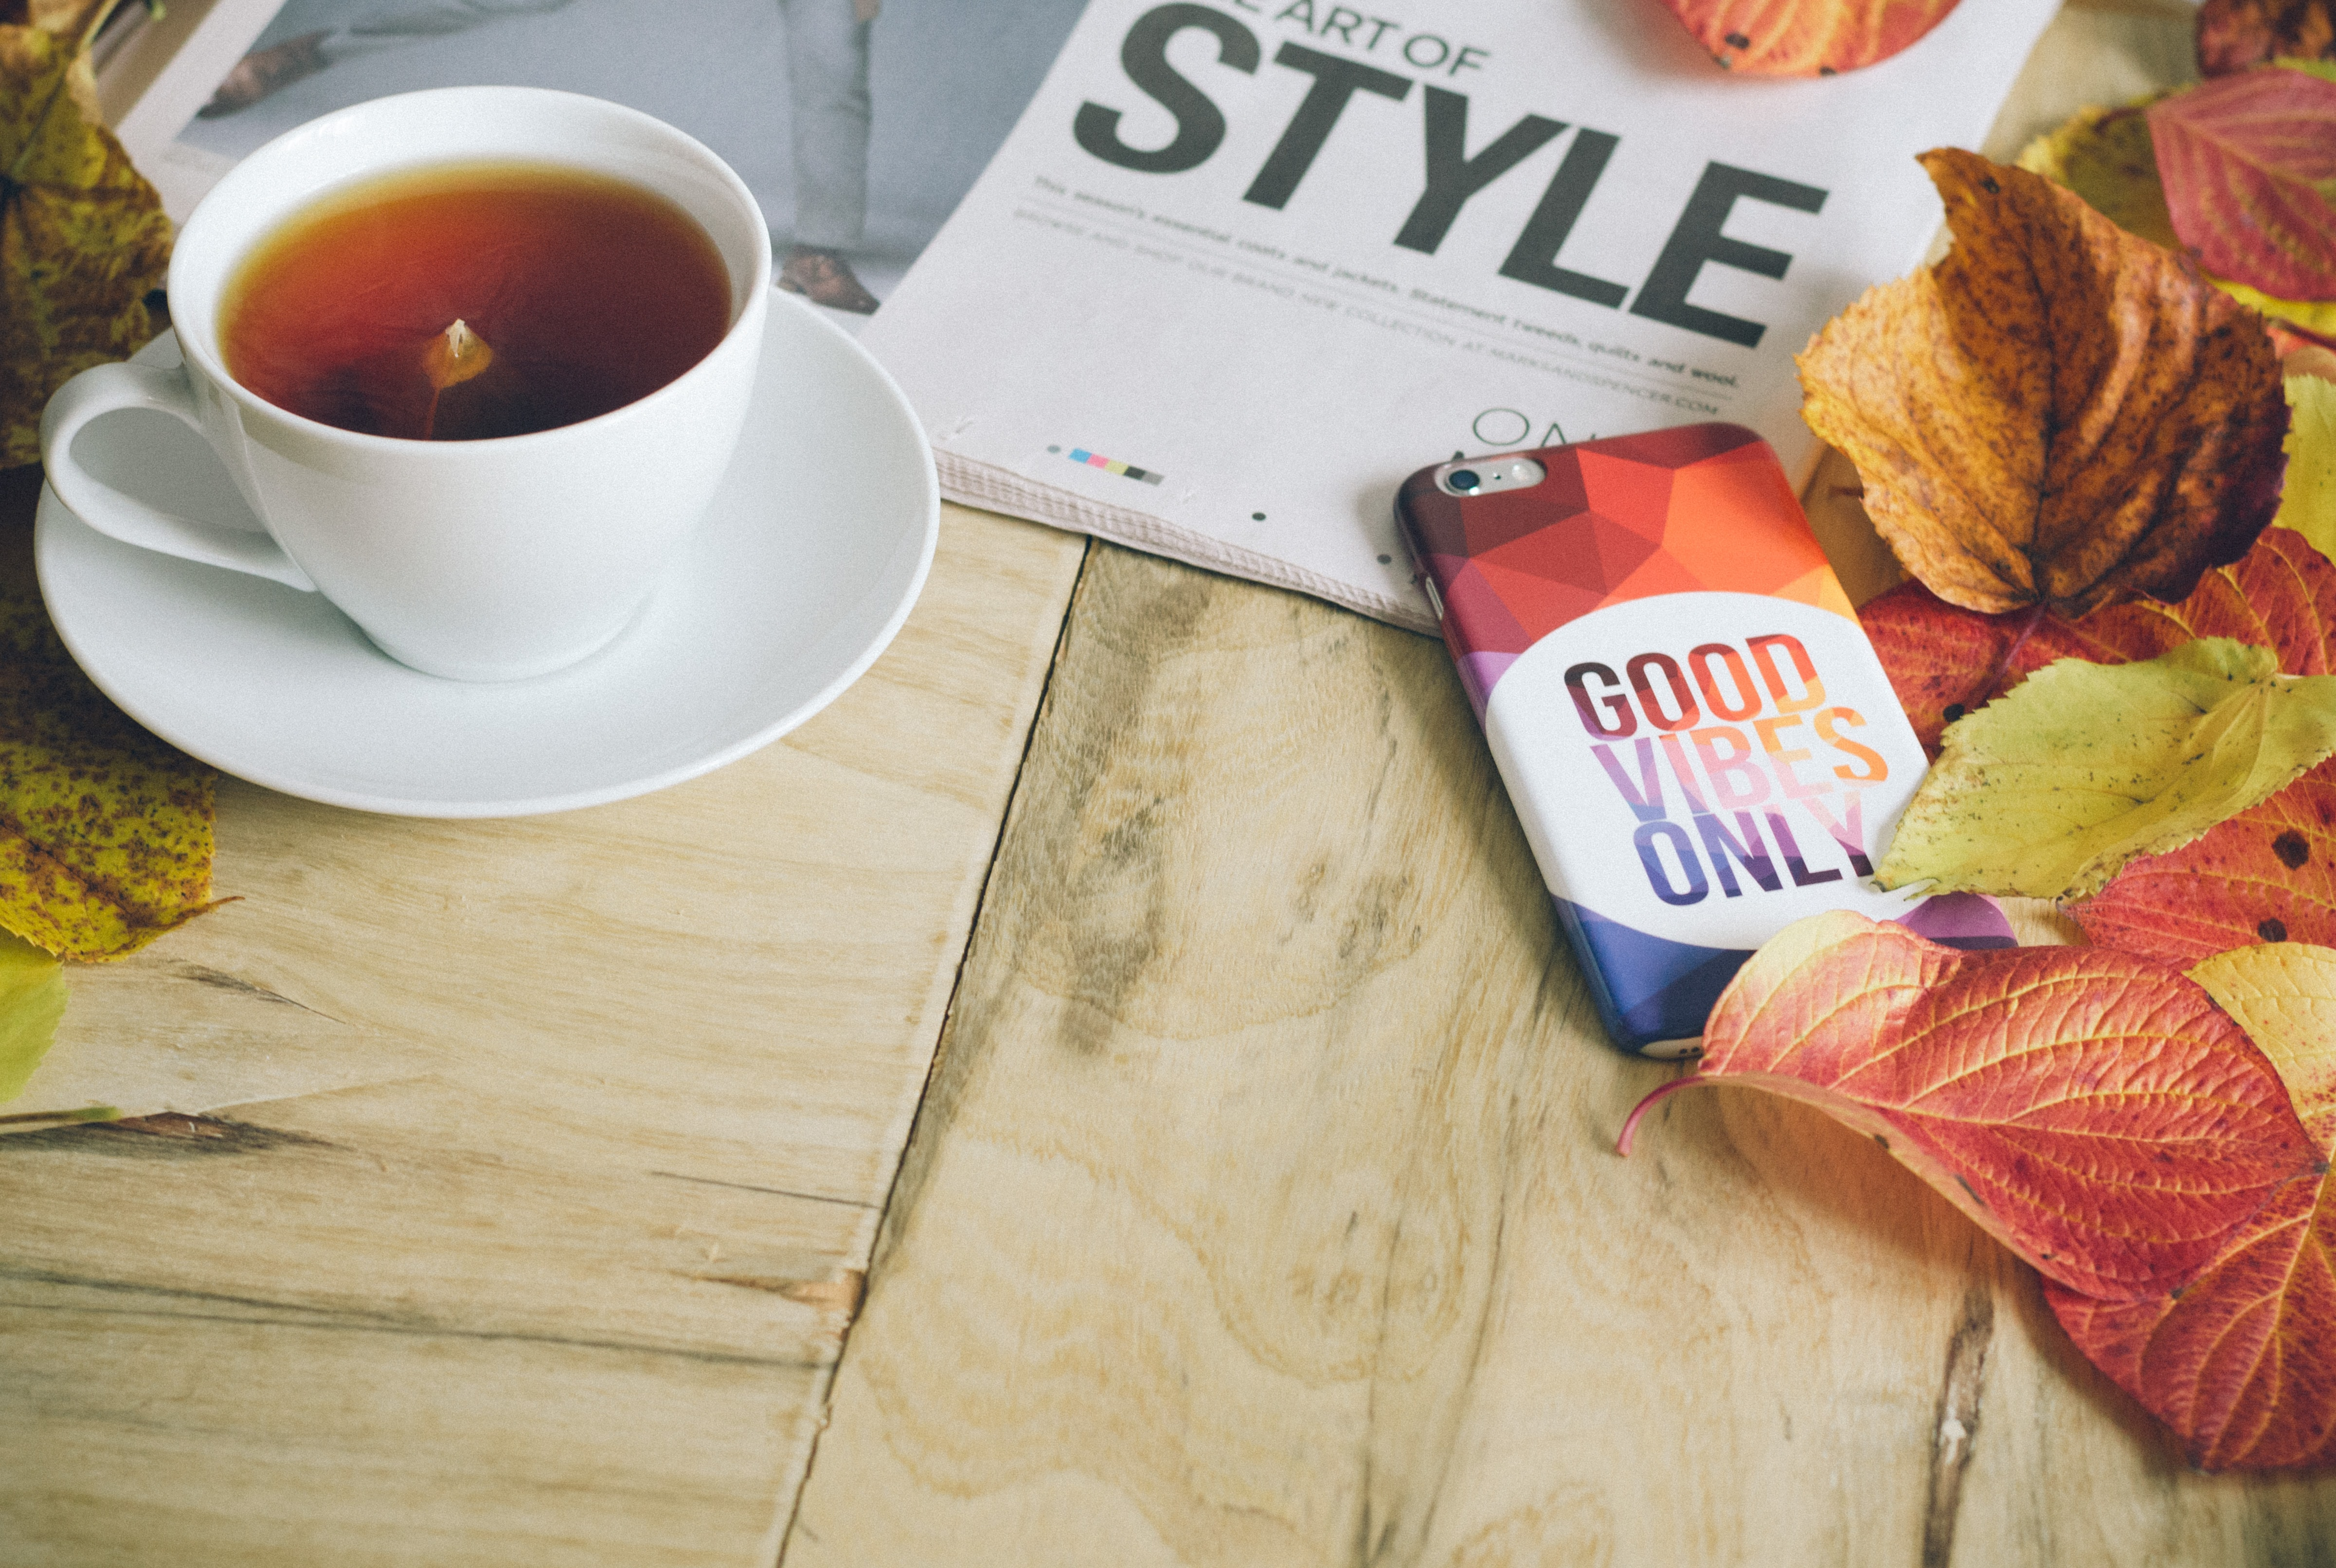 An iPhone in a colorful case next to a newspaper, a cup of coffee and orange autumn leaves